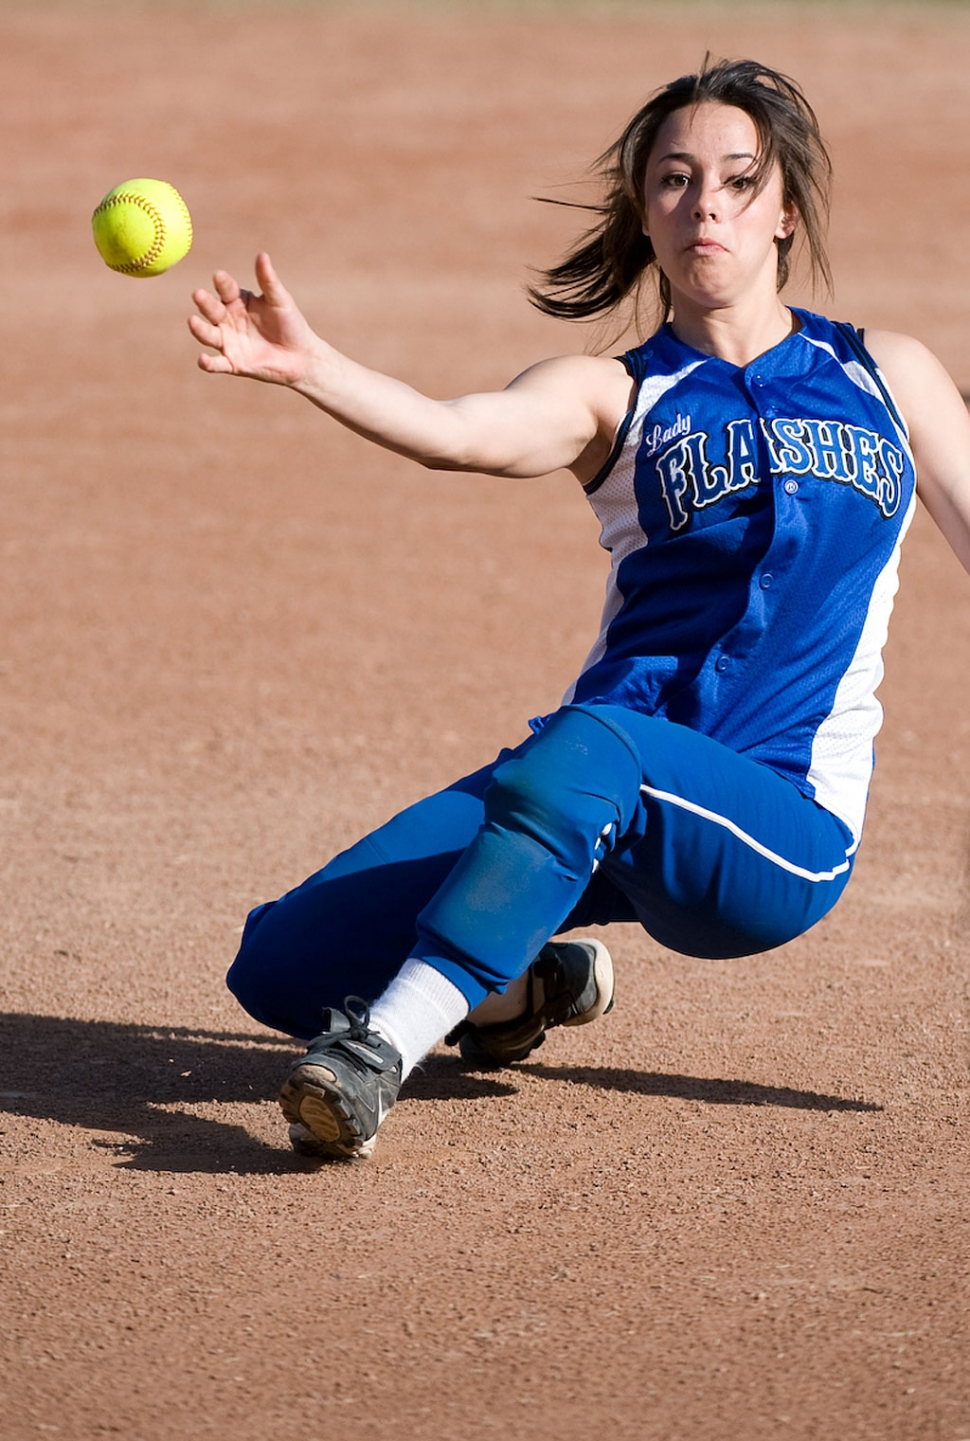 Jazmyne Alvary makes the infield play against Santa Clara, Tuesday, March 31. (Photos by SantaBarbarapix.com)